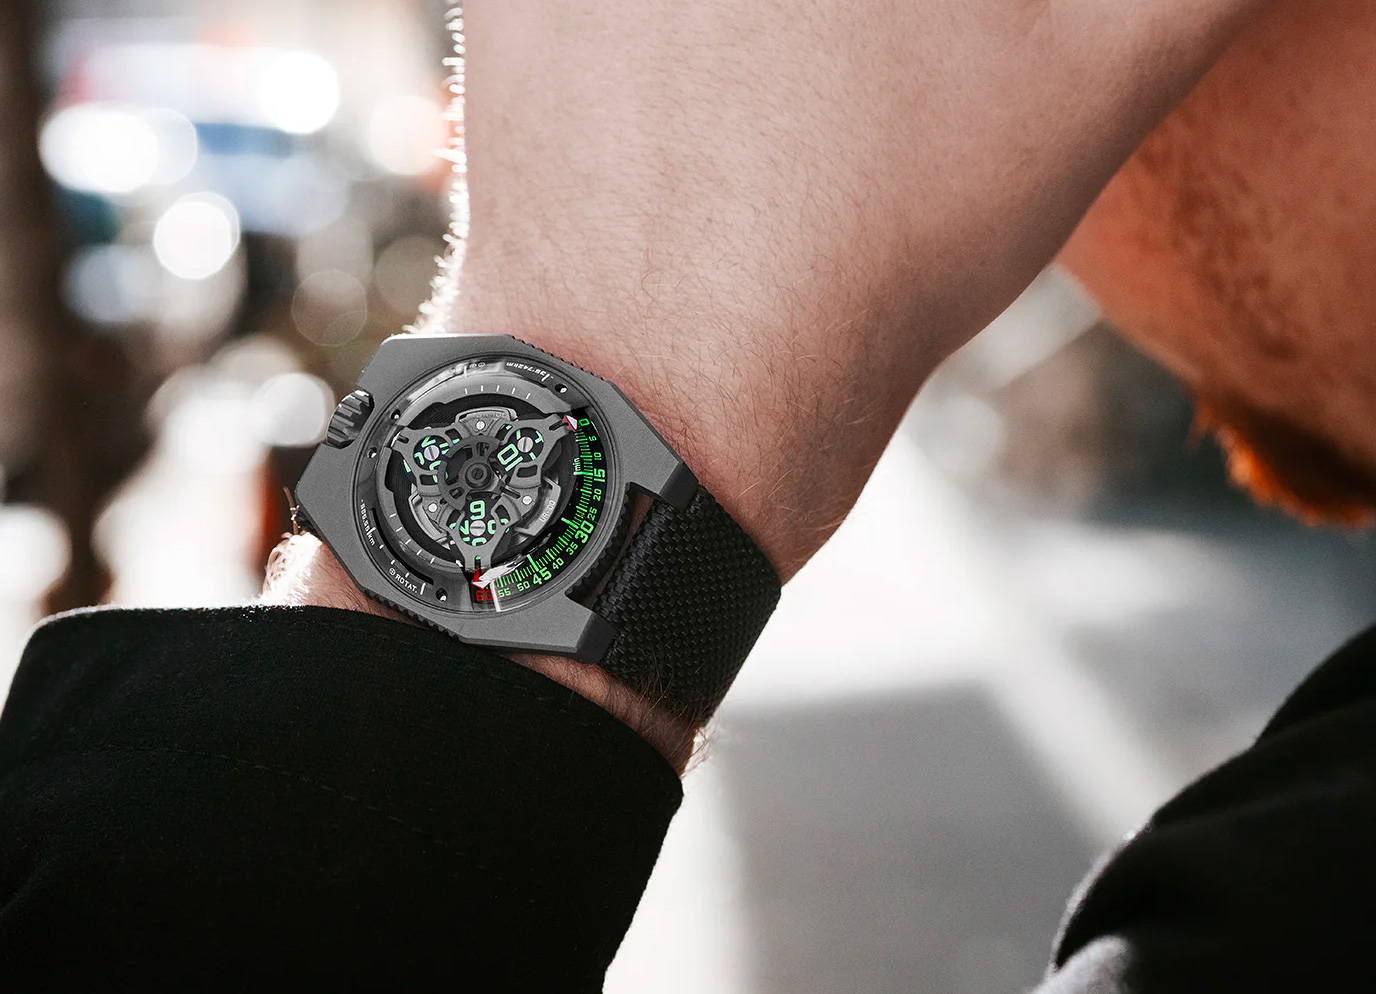 Measure Time & Earth's Rotation with the Urwerk UR-100 at werd.com